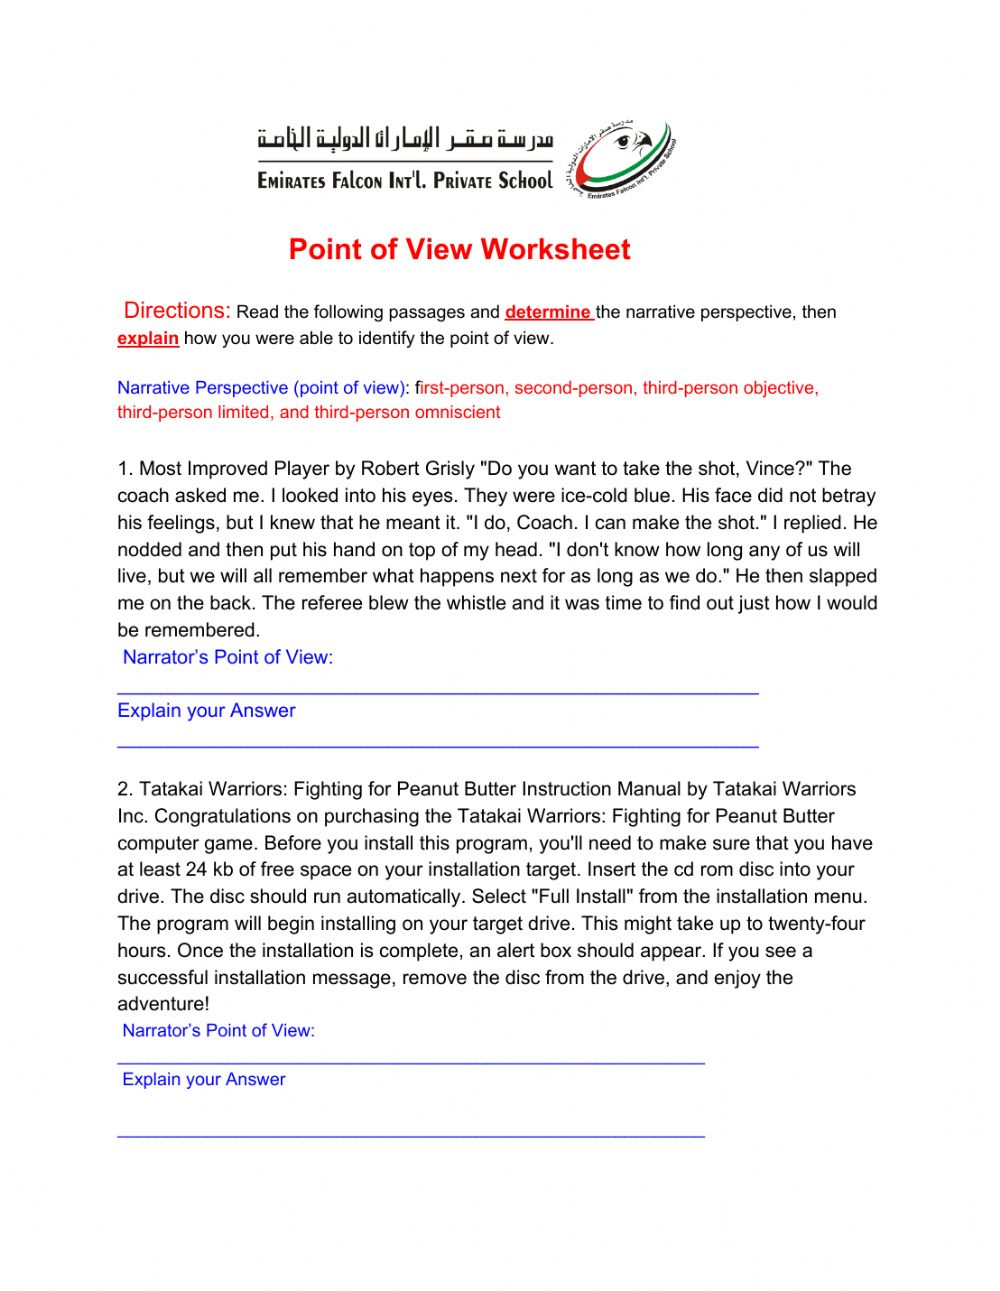 Author's point of view worksheet